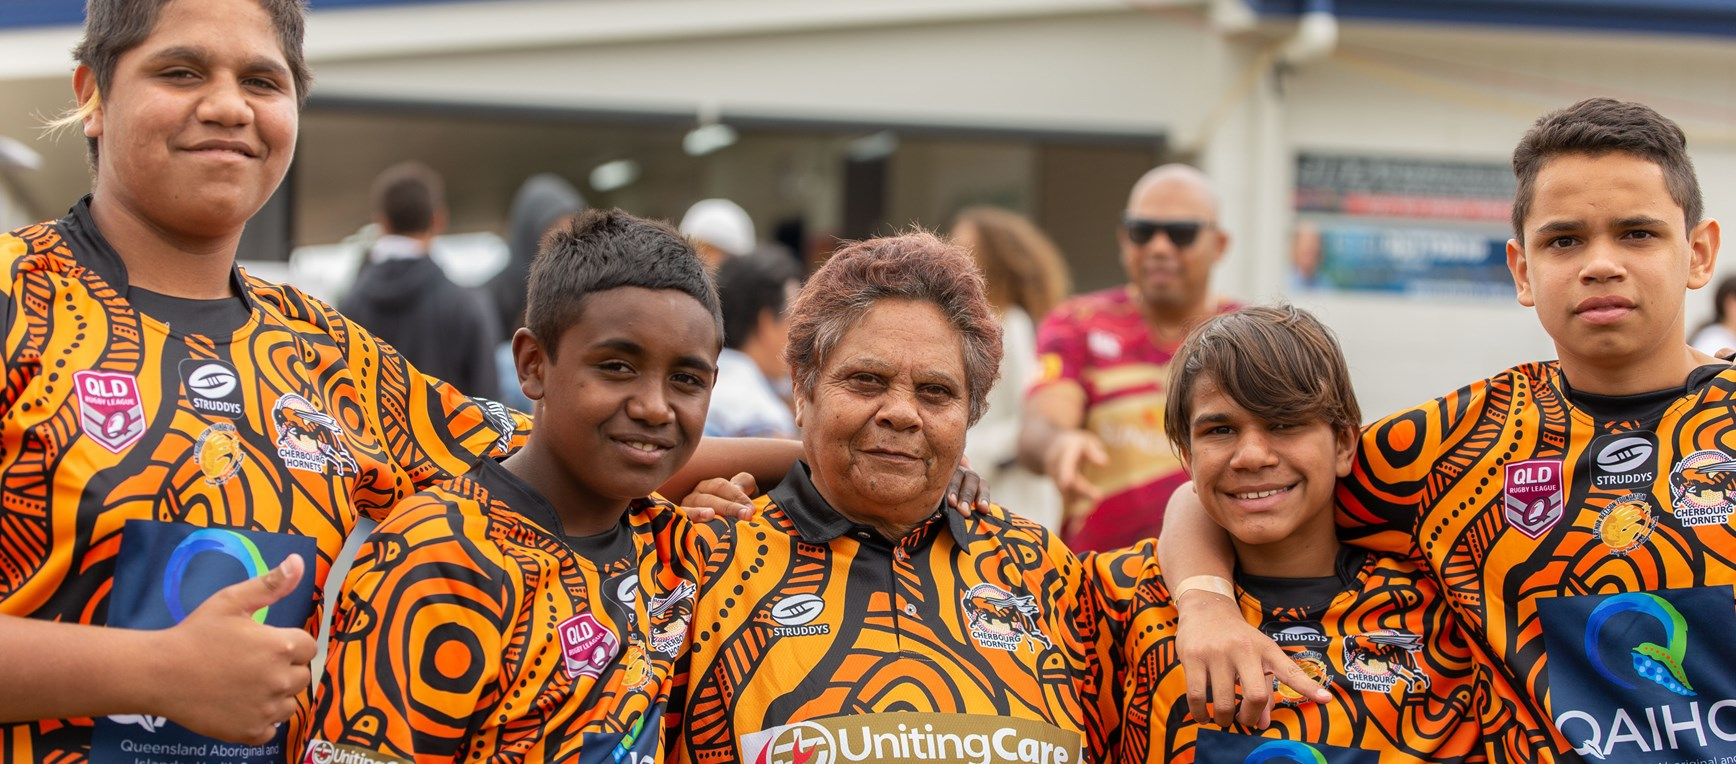 In pictures: Murri Carnival Day 1